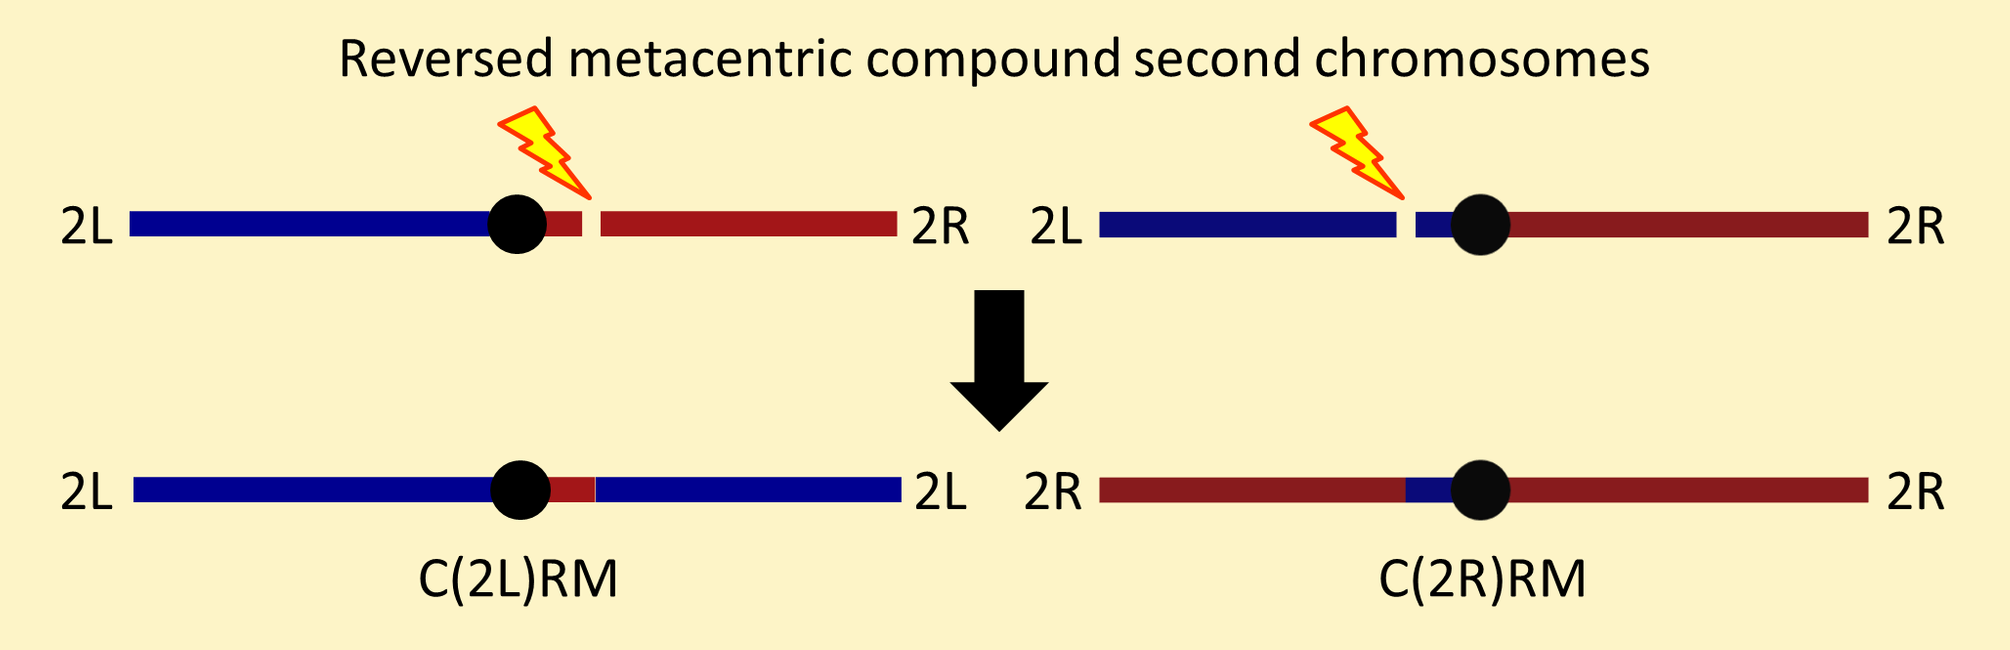 Reversed metacentric compound second chromosomes